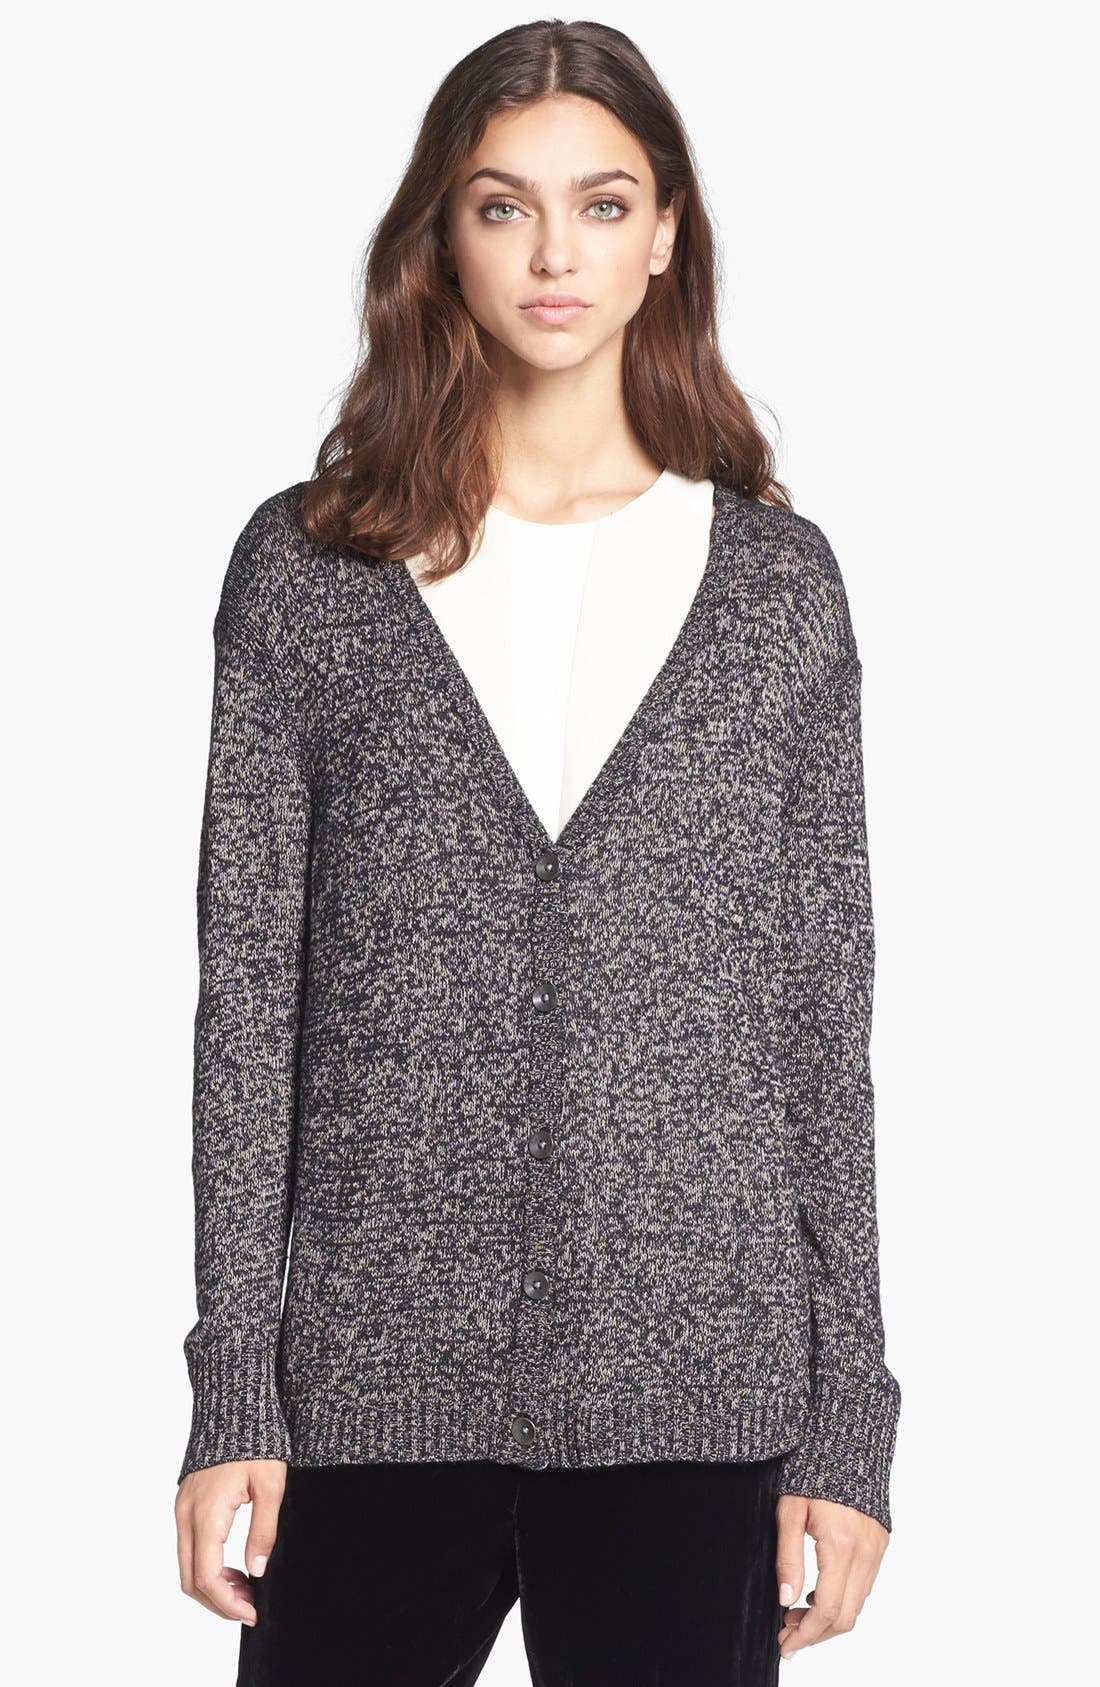 Alternate Image 1 Selected - rag & bone 'Melanie' Cardigan